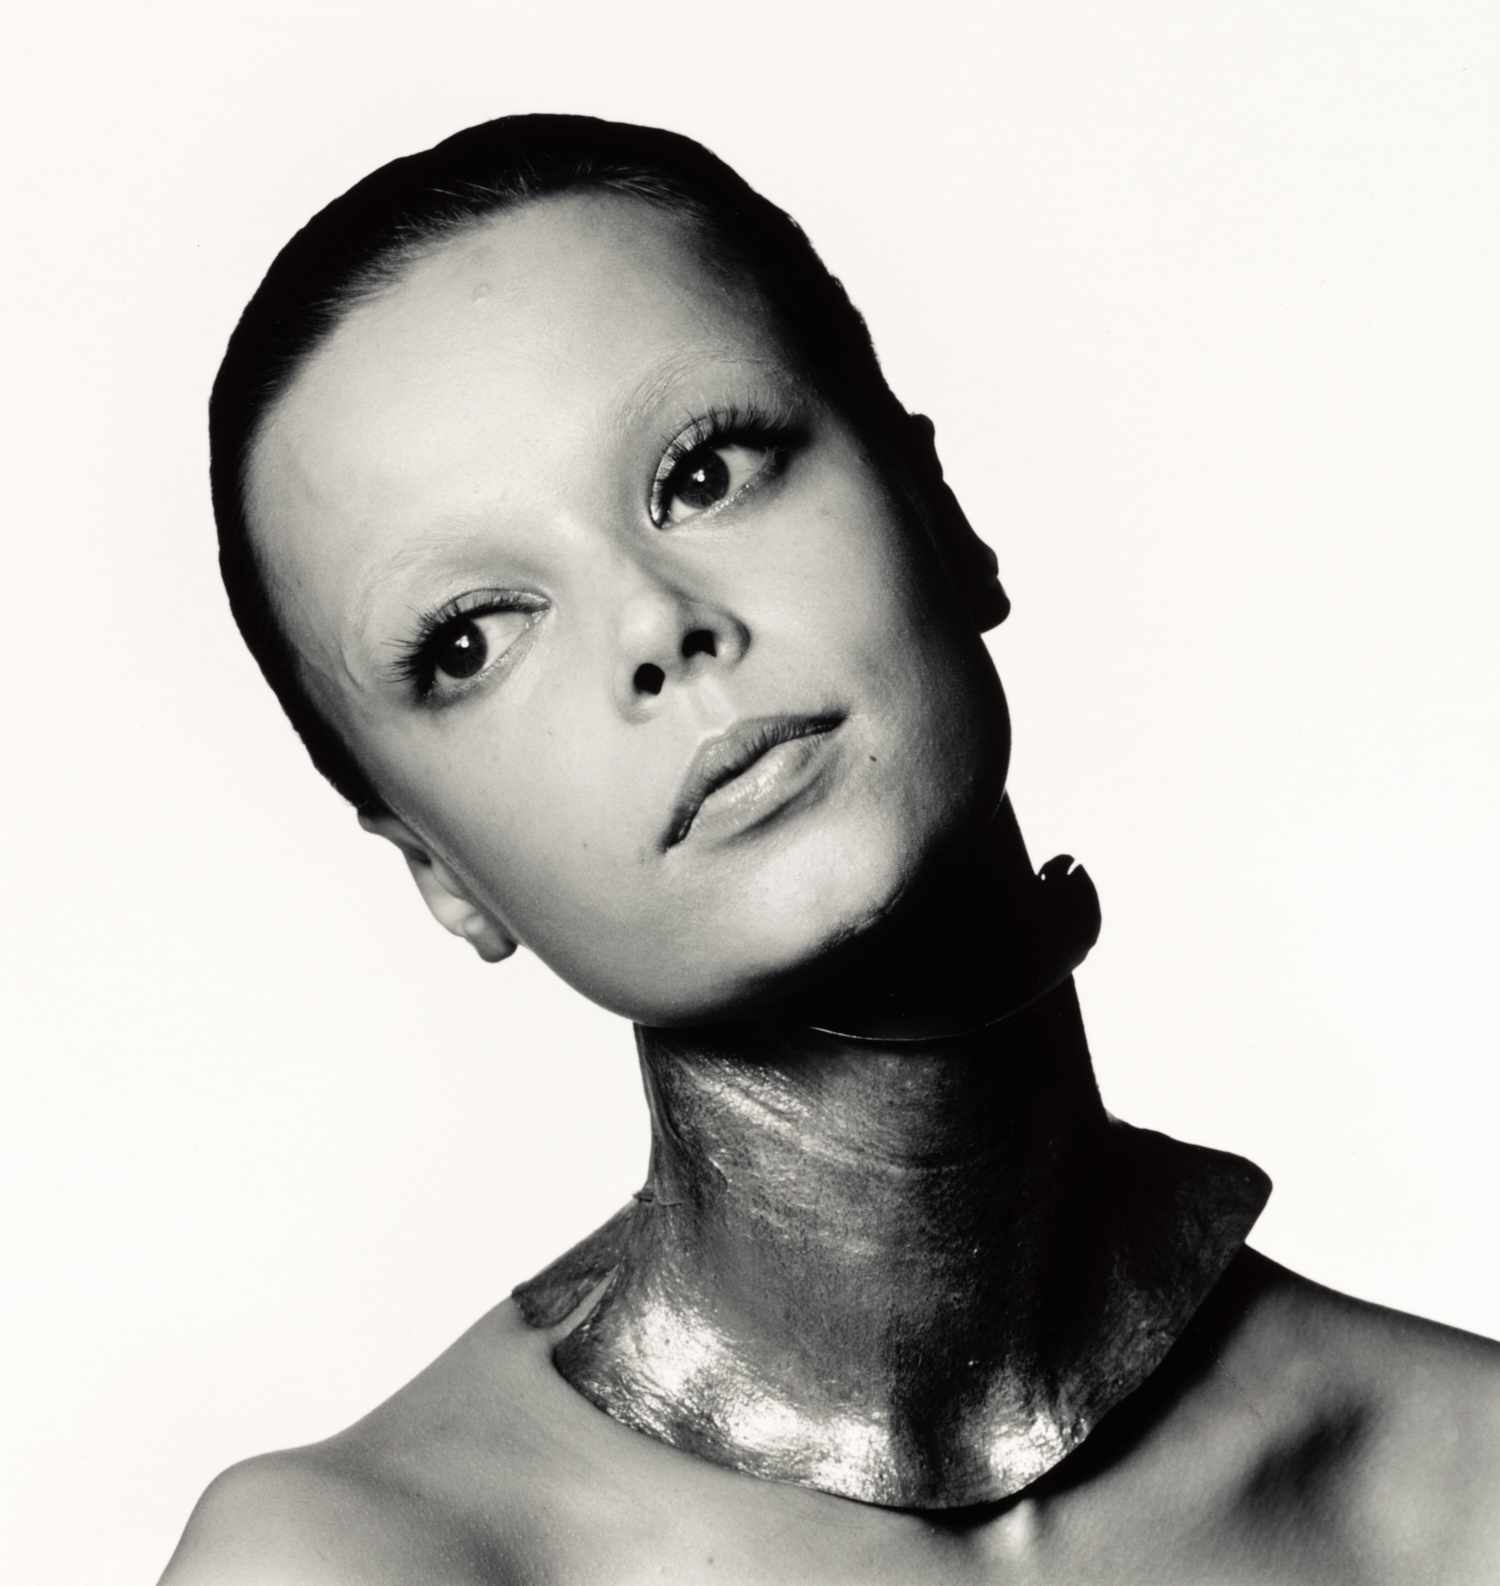 Mouche with Gold Neck Band , Paris, 1969 Gelatin silver print © The Irving Penn Foundation